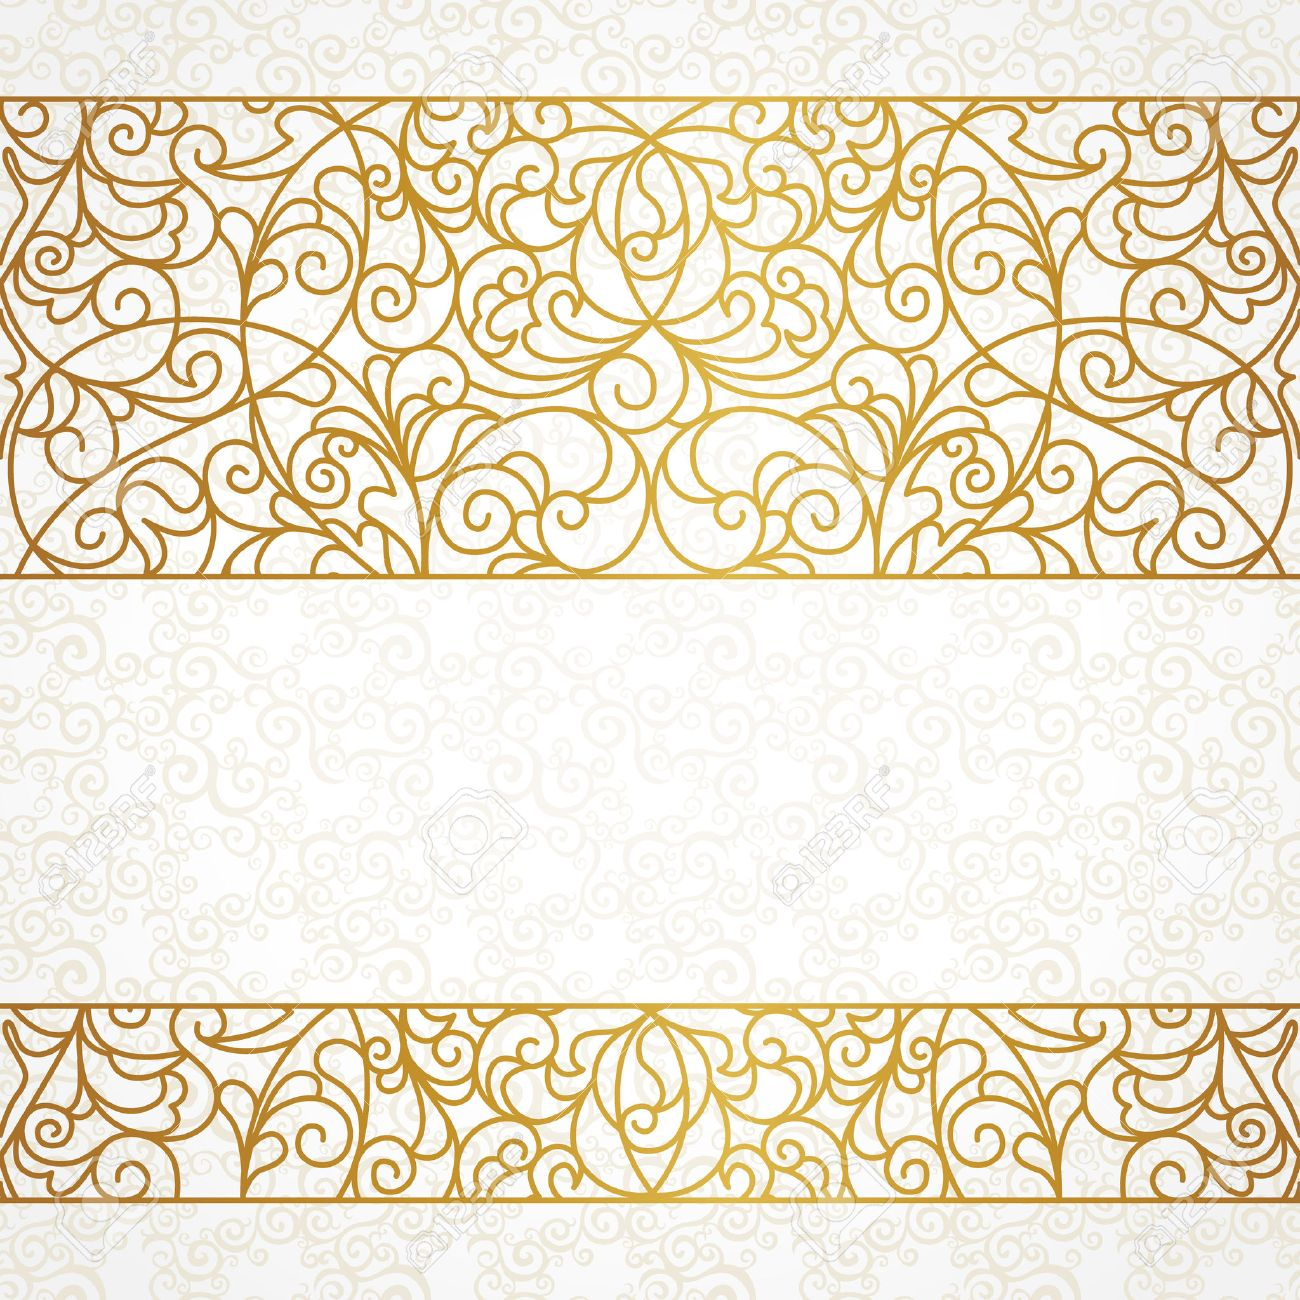 Line Art Element For Design Place Text Ornamental Vintage Frame Wedding Invitations And Greeting Cards Traditional Gold Decor